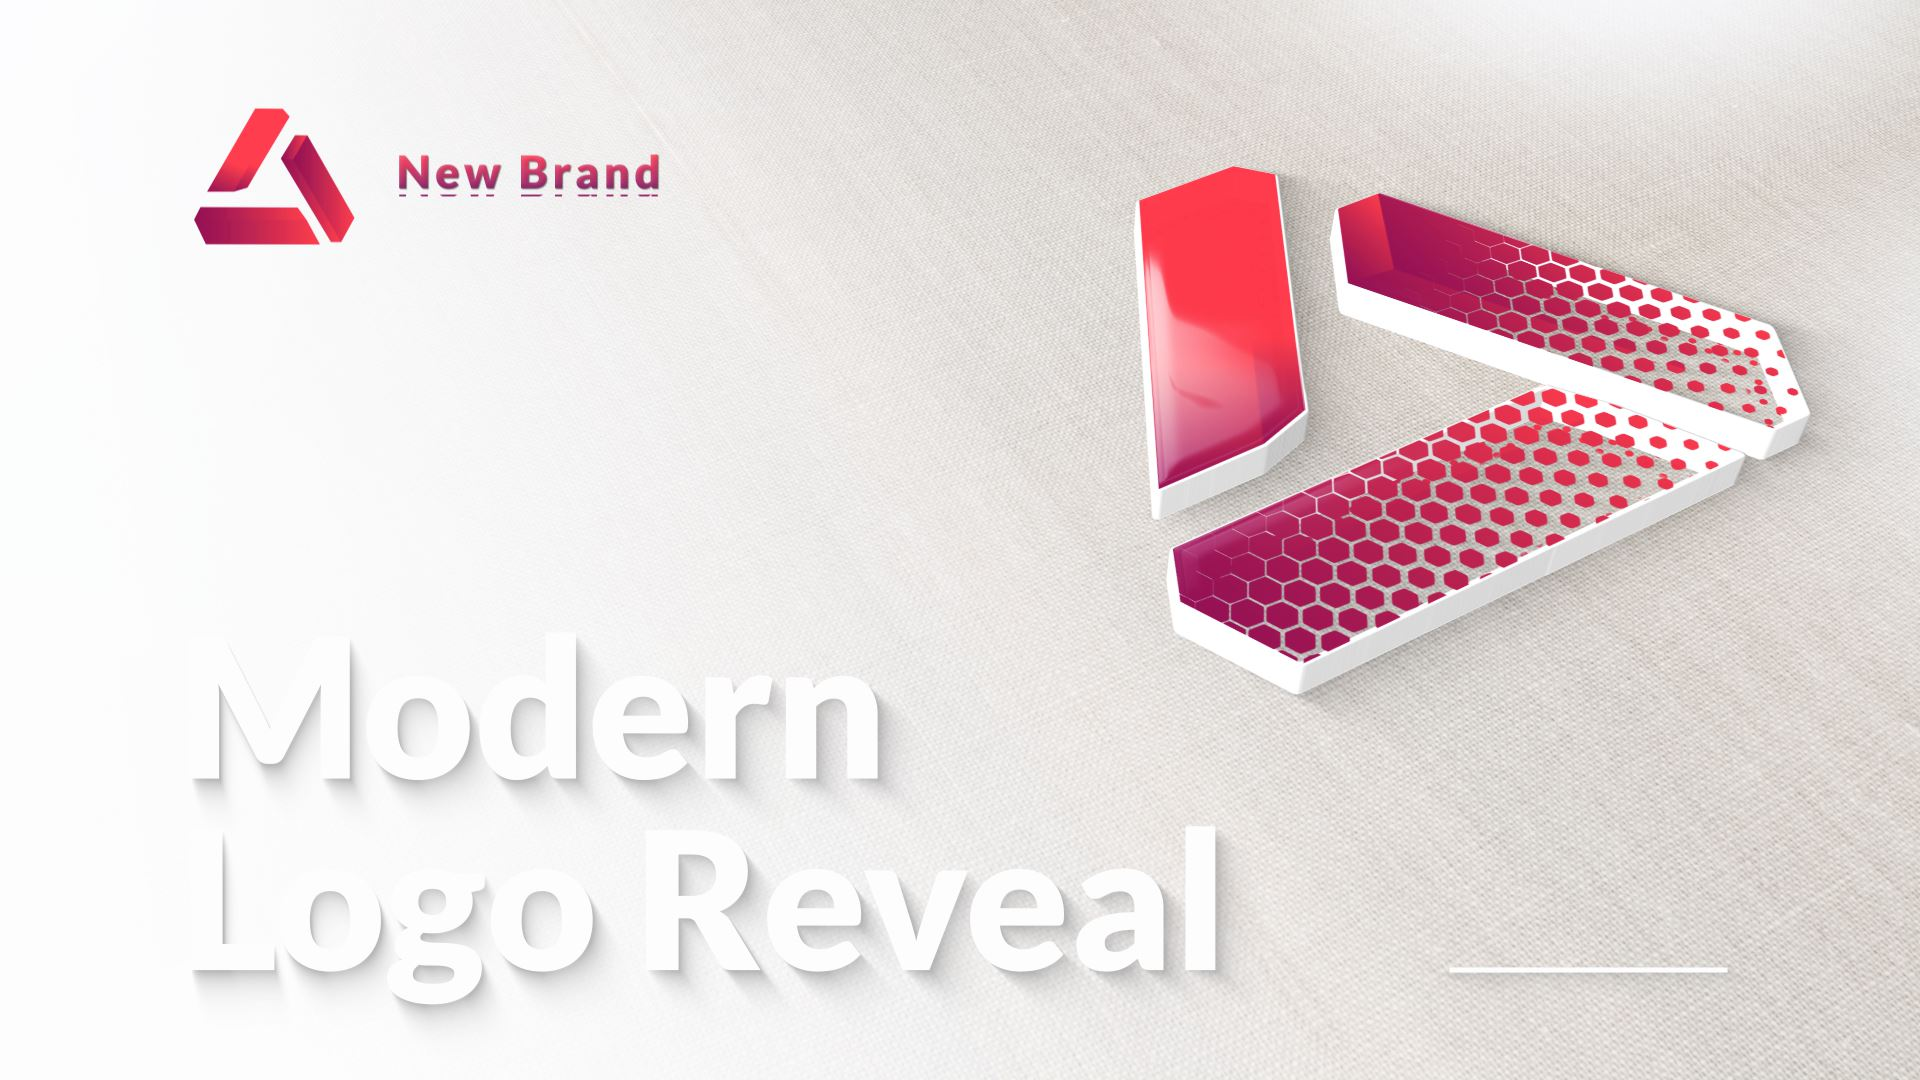 Modern & Clean Logo Reveal - 1